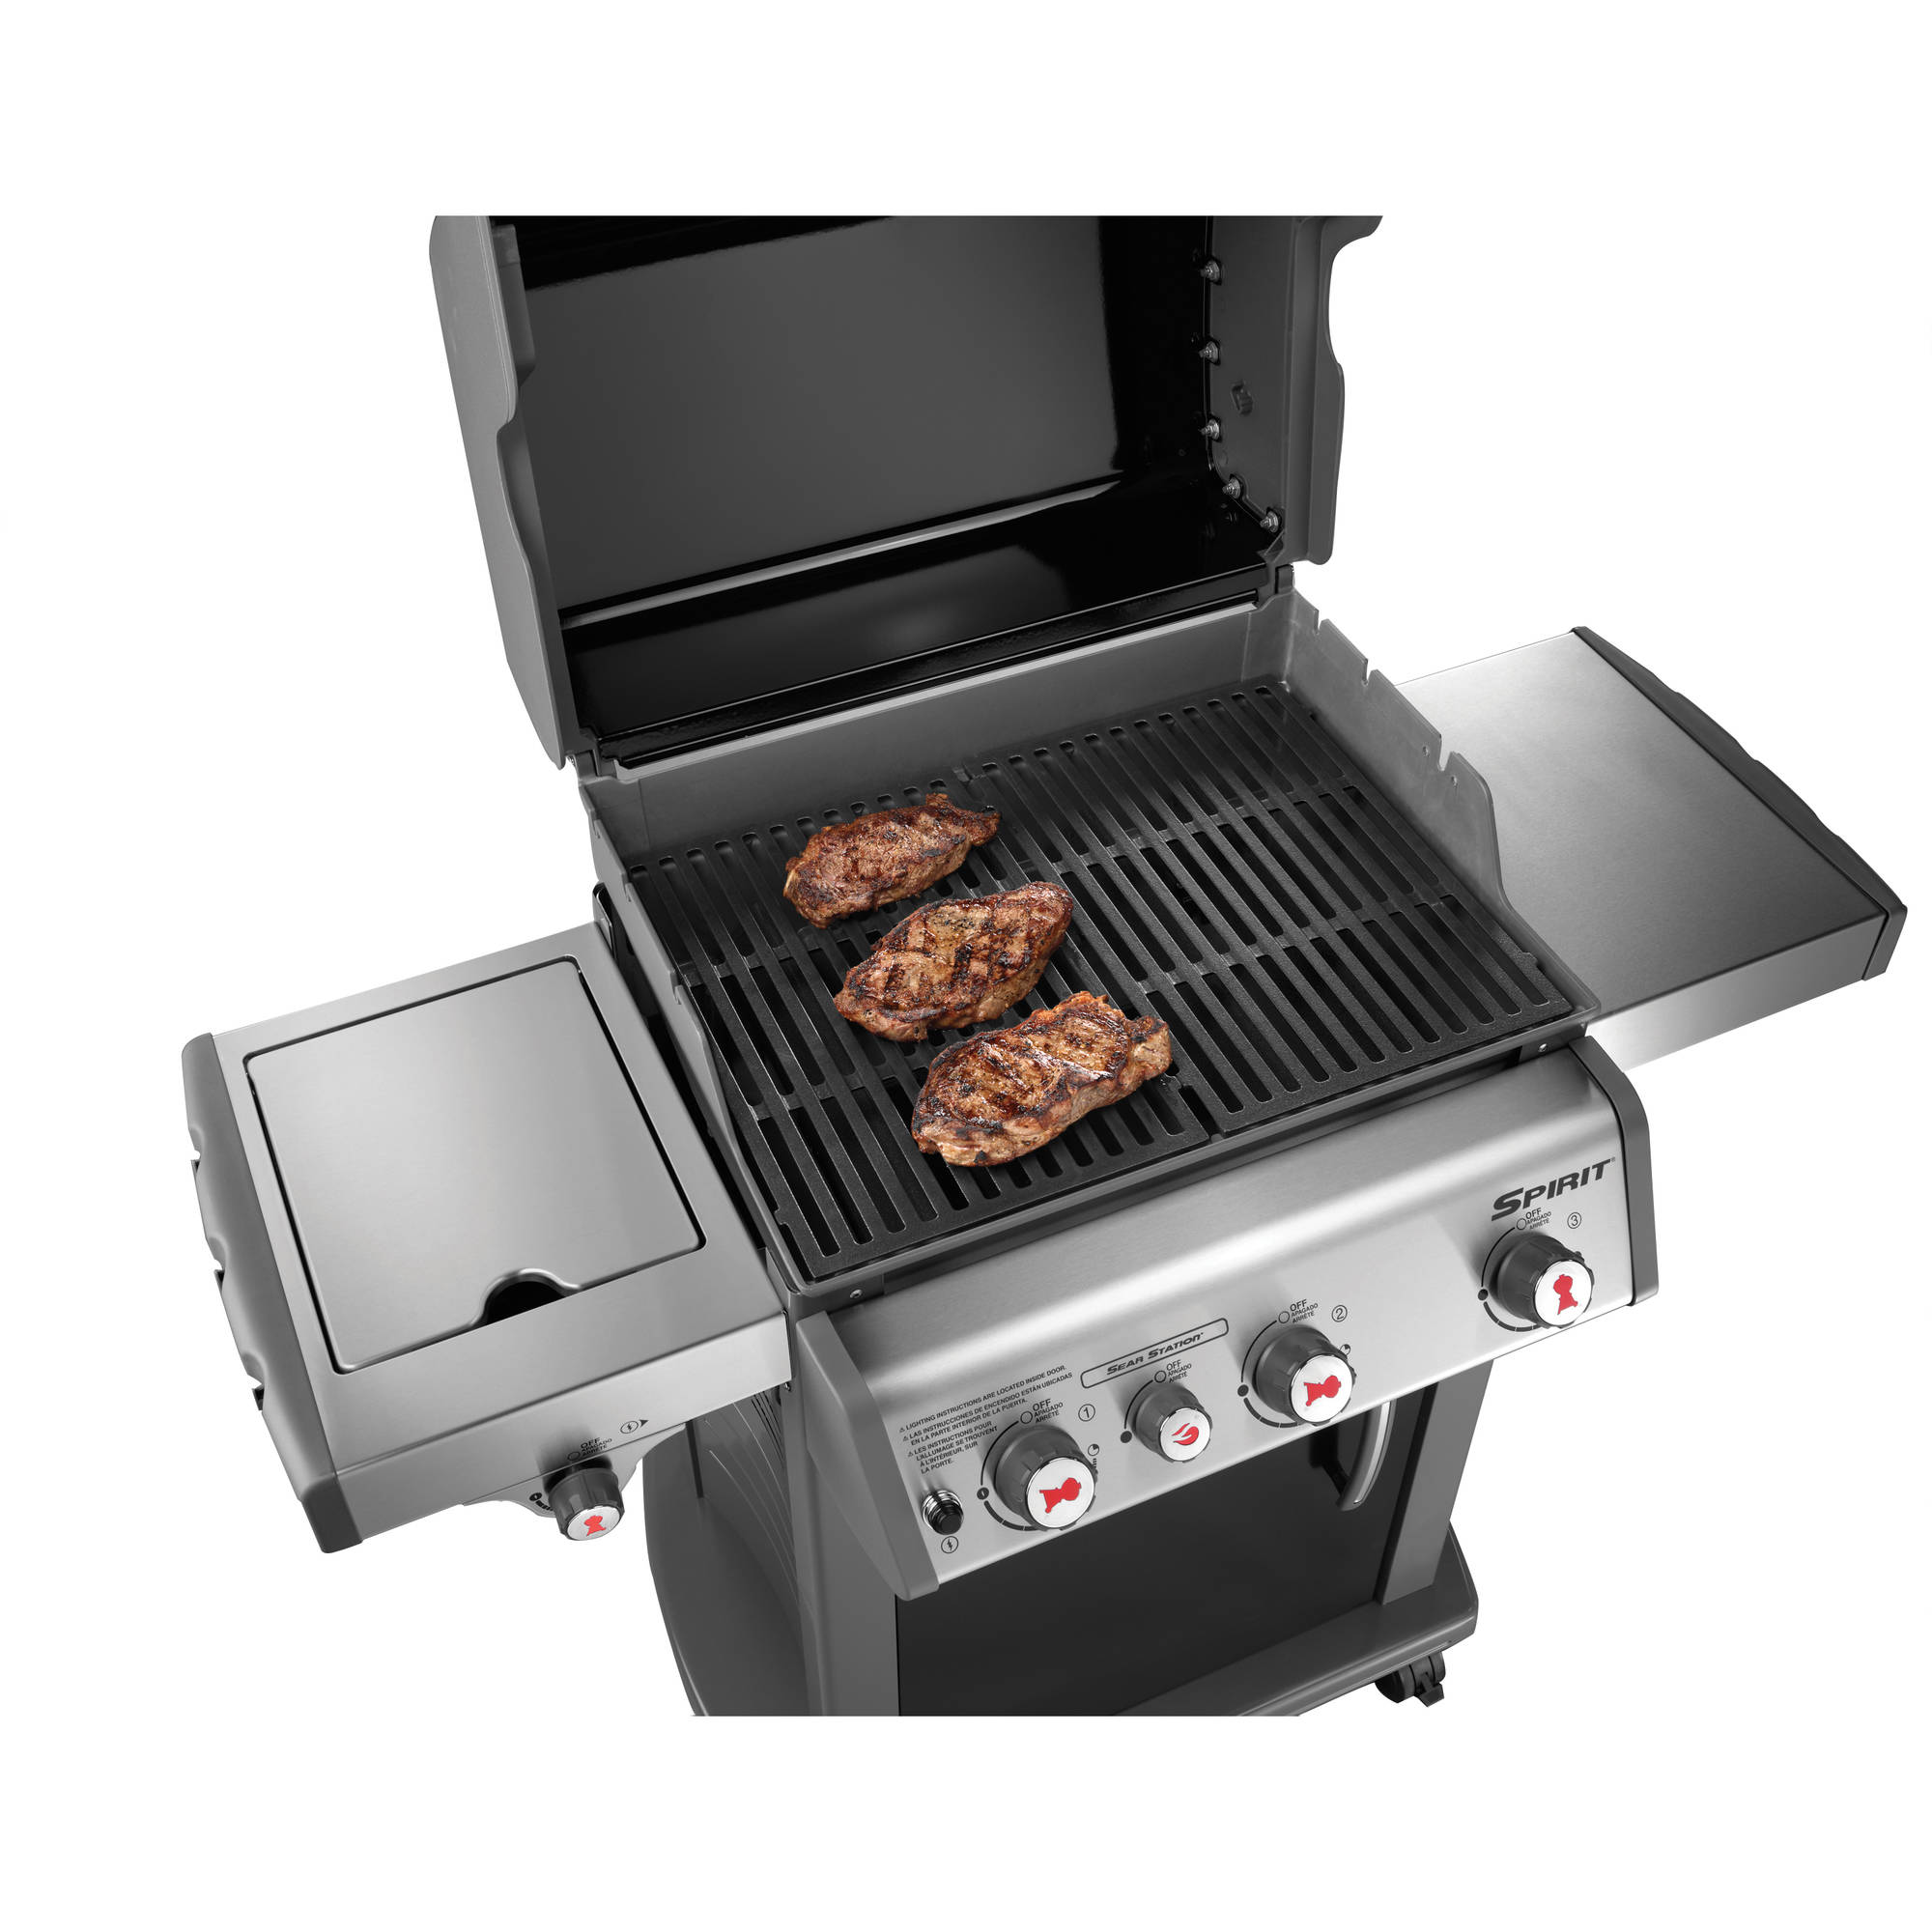 spirit e 330 gas grill weber grills wood pellets hardware long island. Black Bedroom Furniture Sets. Home Design Ideas